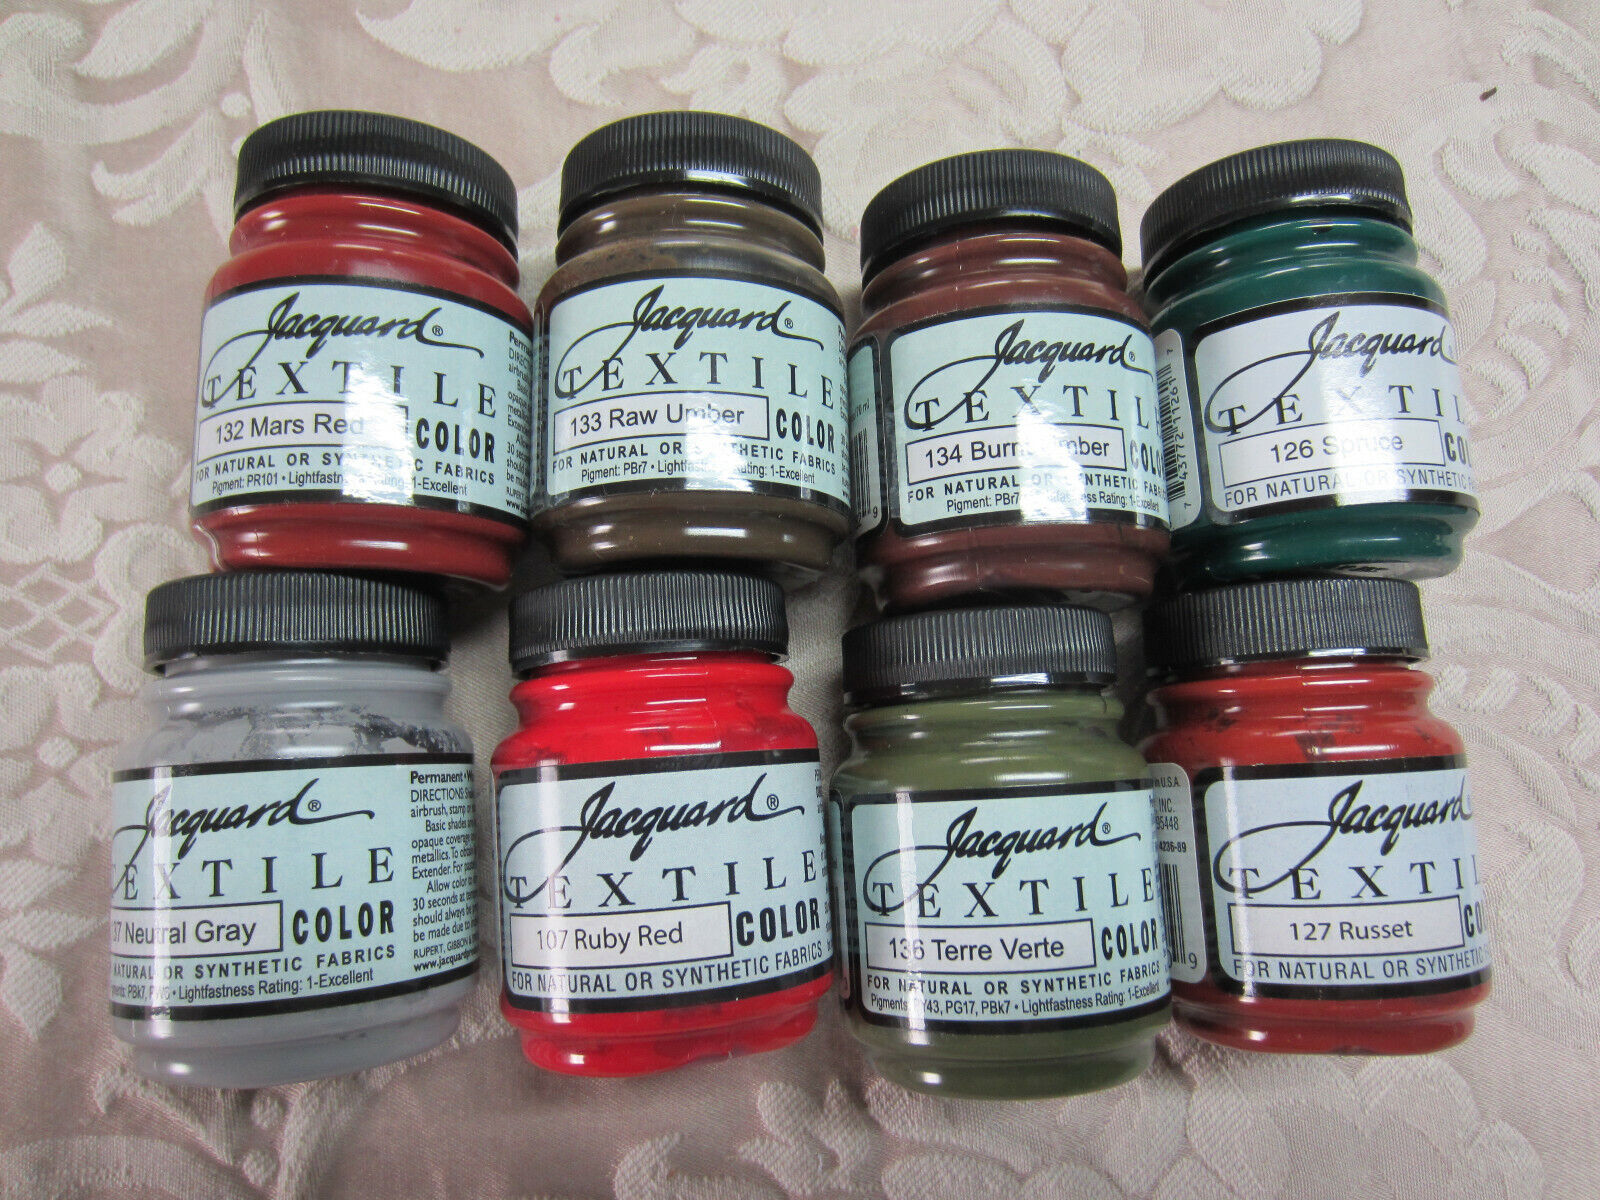 Set of 8 Jacquard Textile Color Artist Acrylic Paint fabric